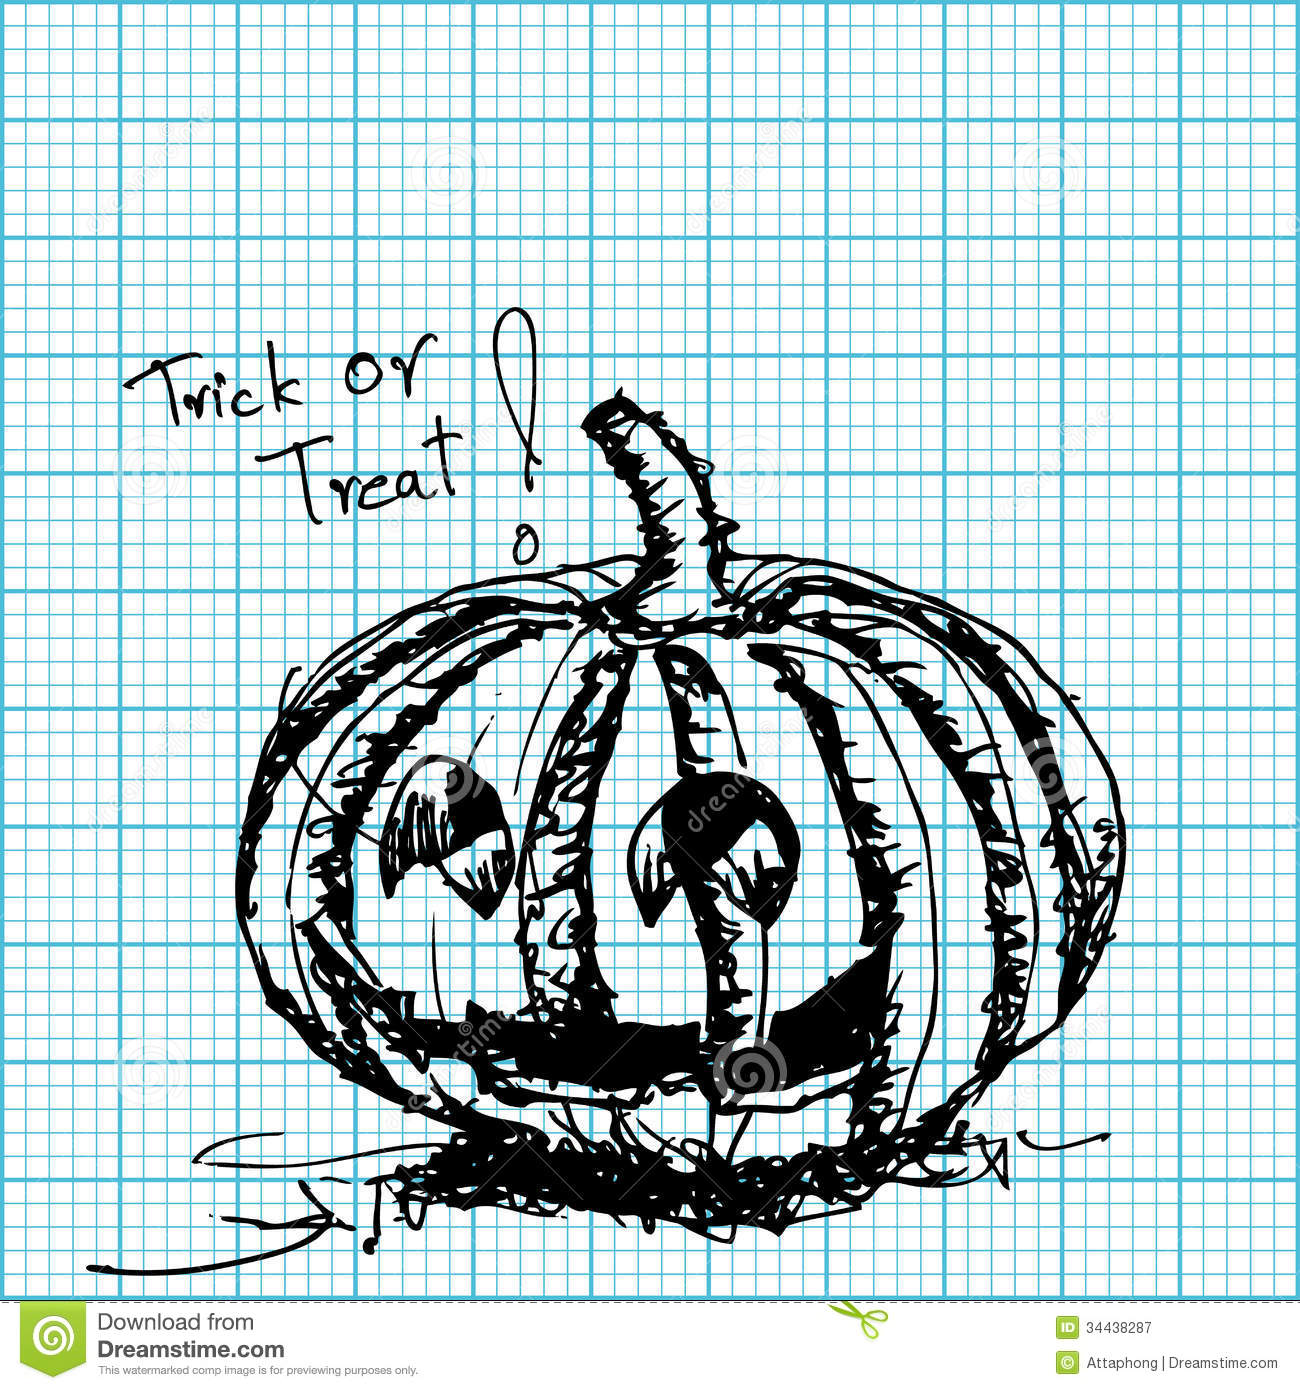 halloween pumpkin sketch on graph paper stock vector illustration